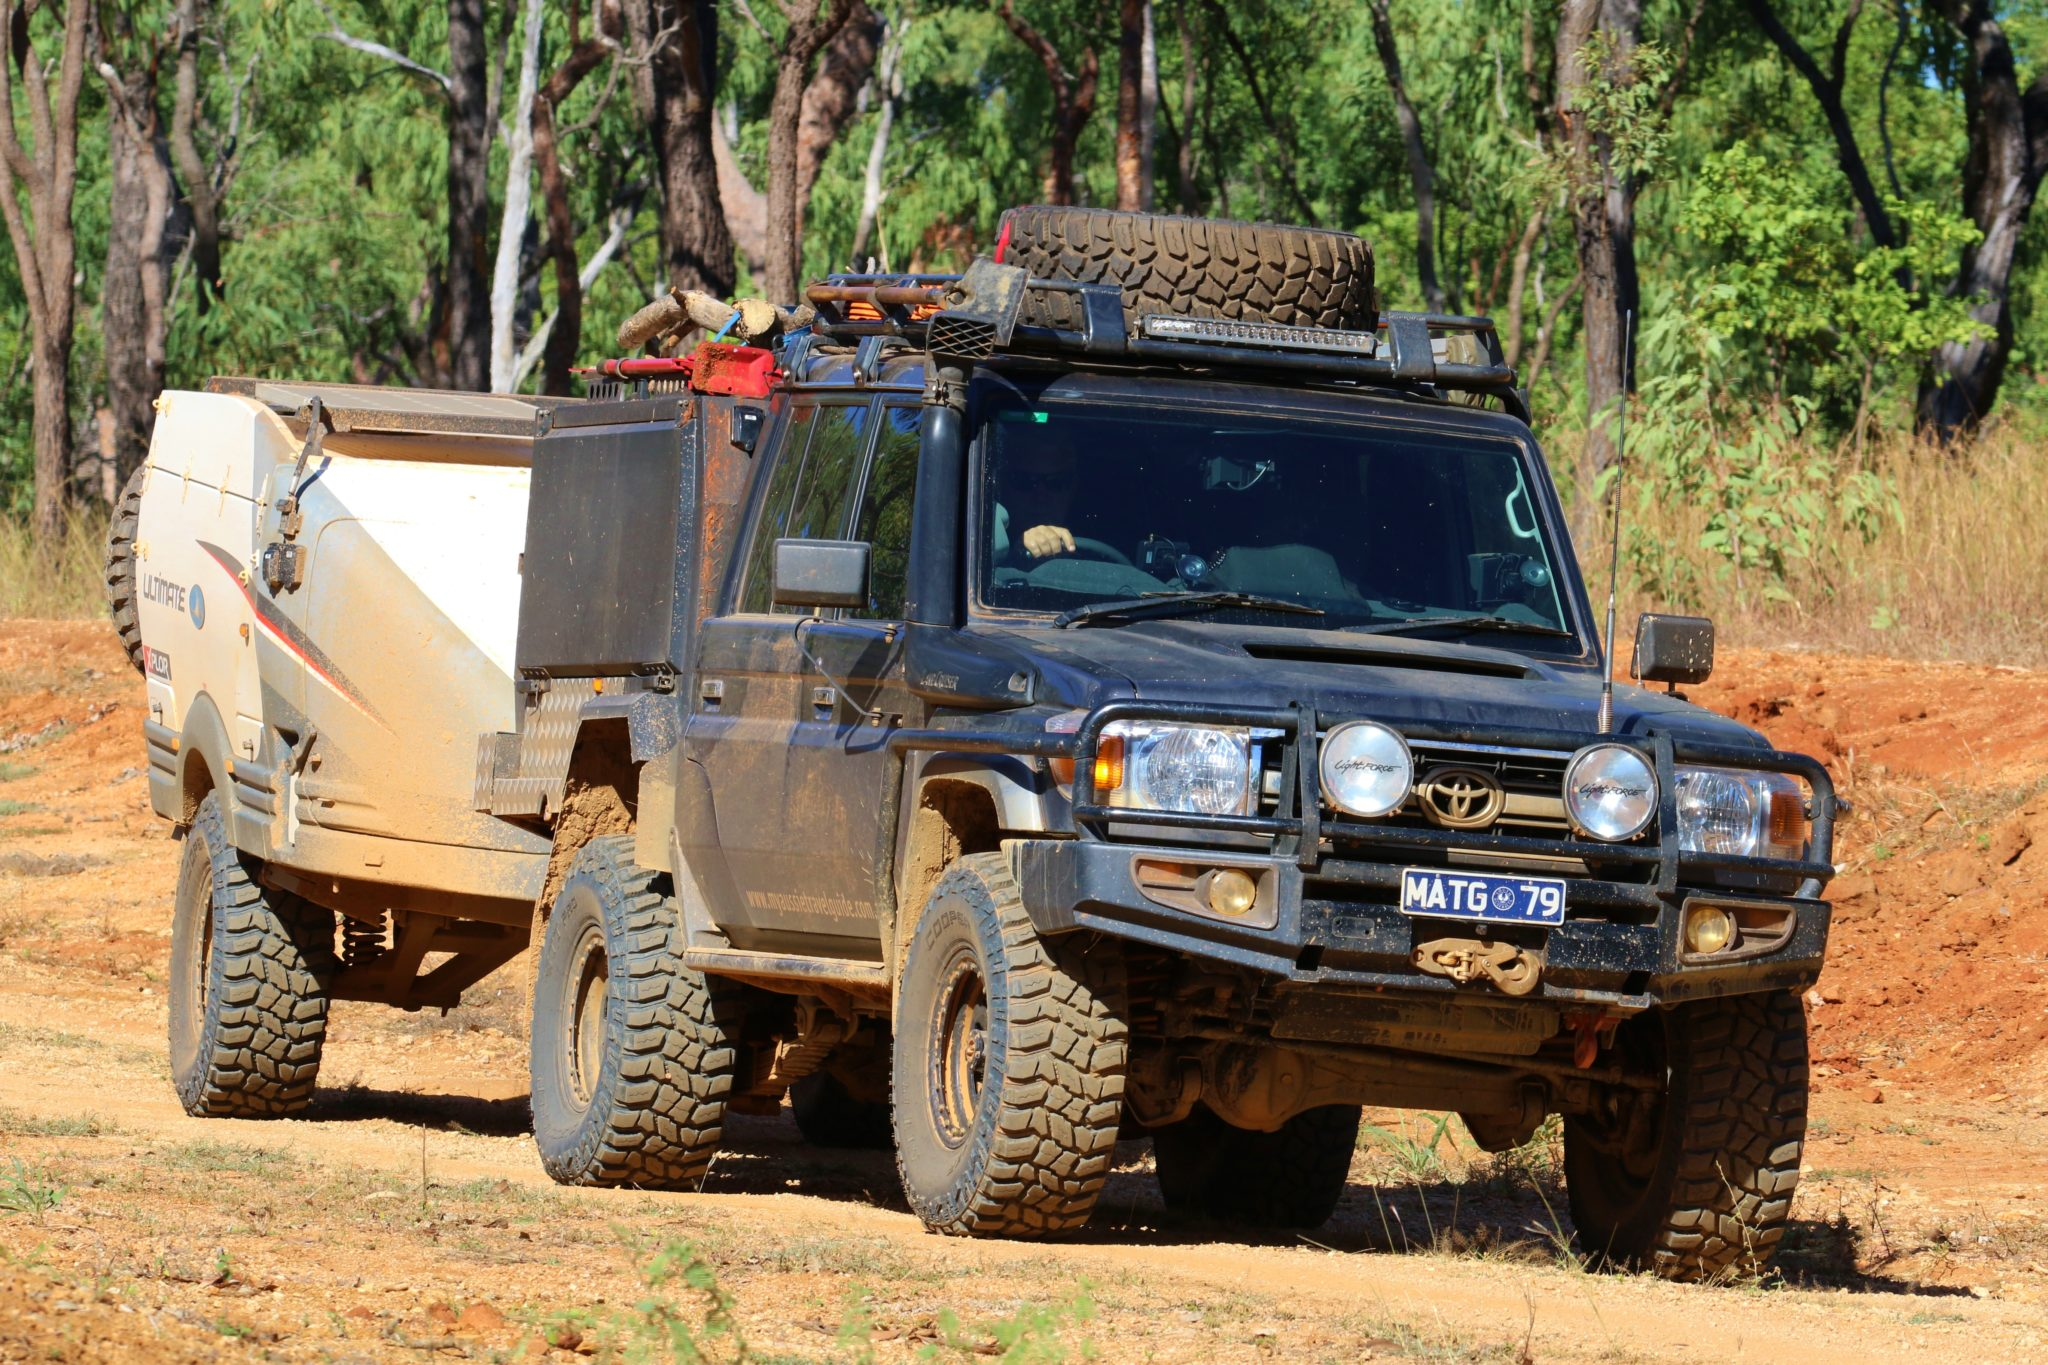 79 79 Series And Ultimate Camper My Aussie Travel Guide